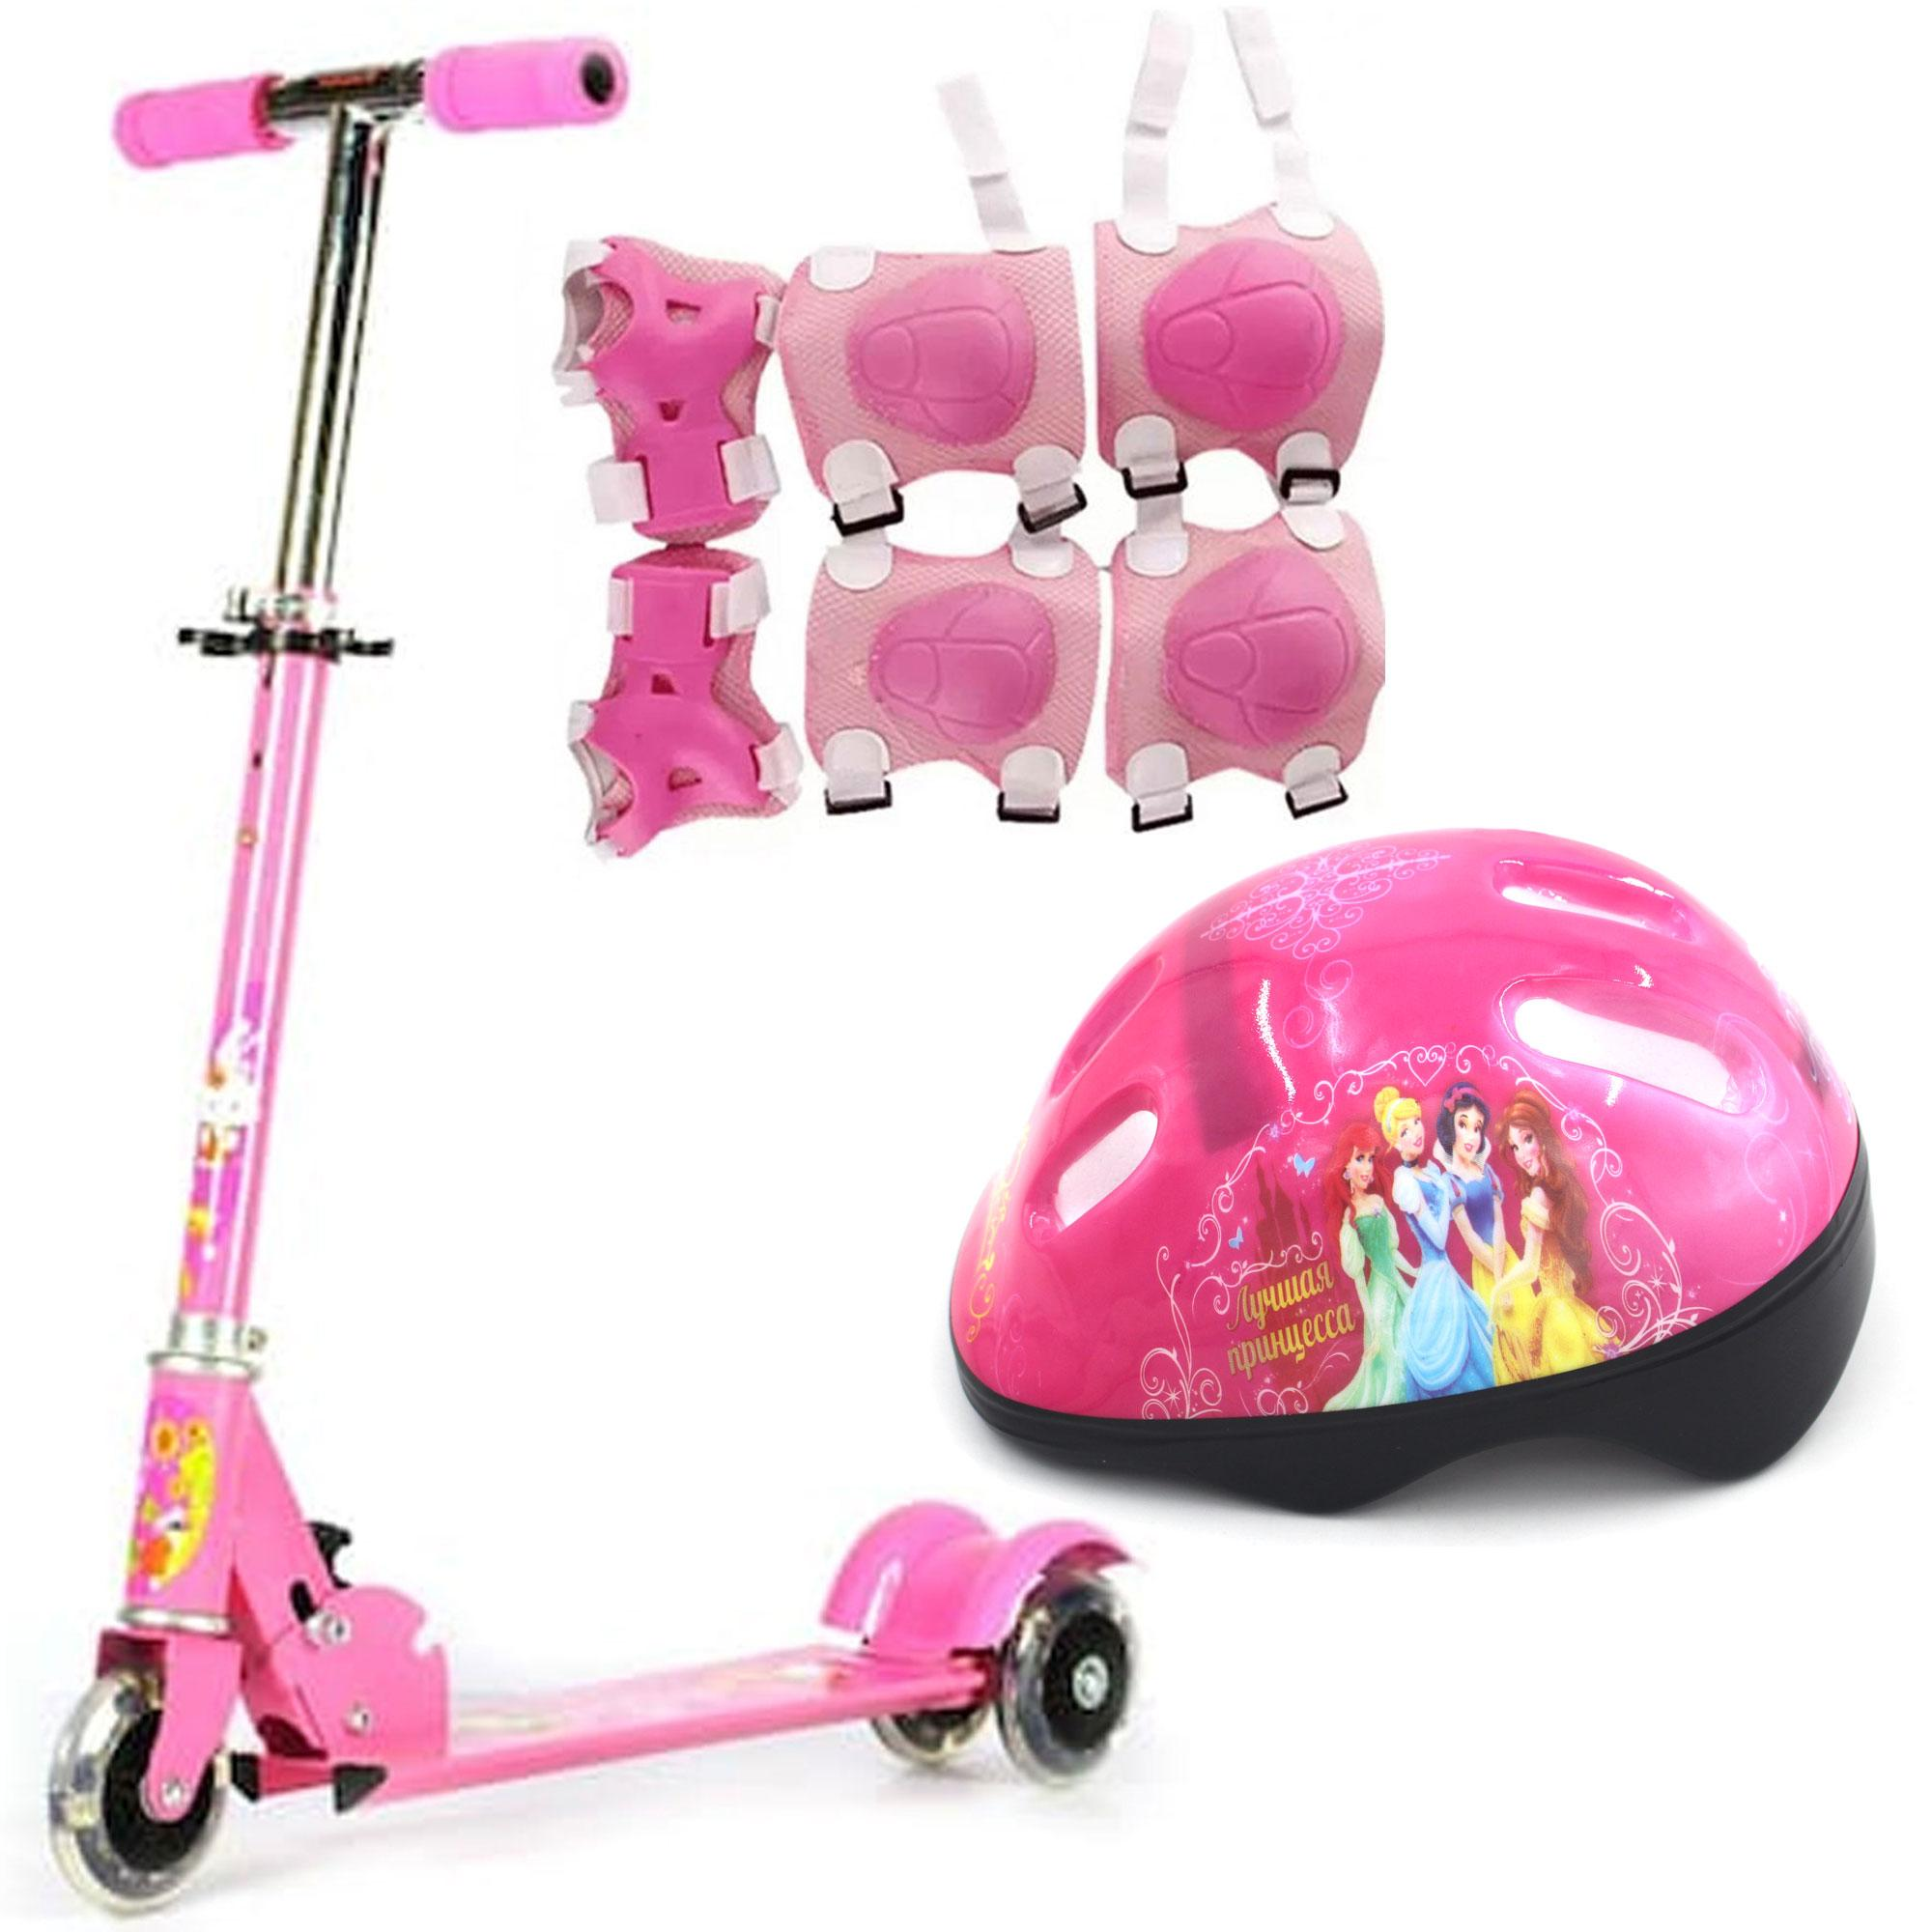 Little Jr 3 Wheels Scooter (pink) With Kids Helmet Pink And 6-Piece Set Protective Pad 1 Set By Gonzalez General Merchandise.